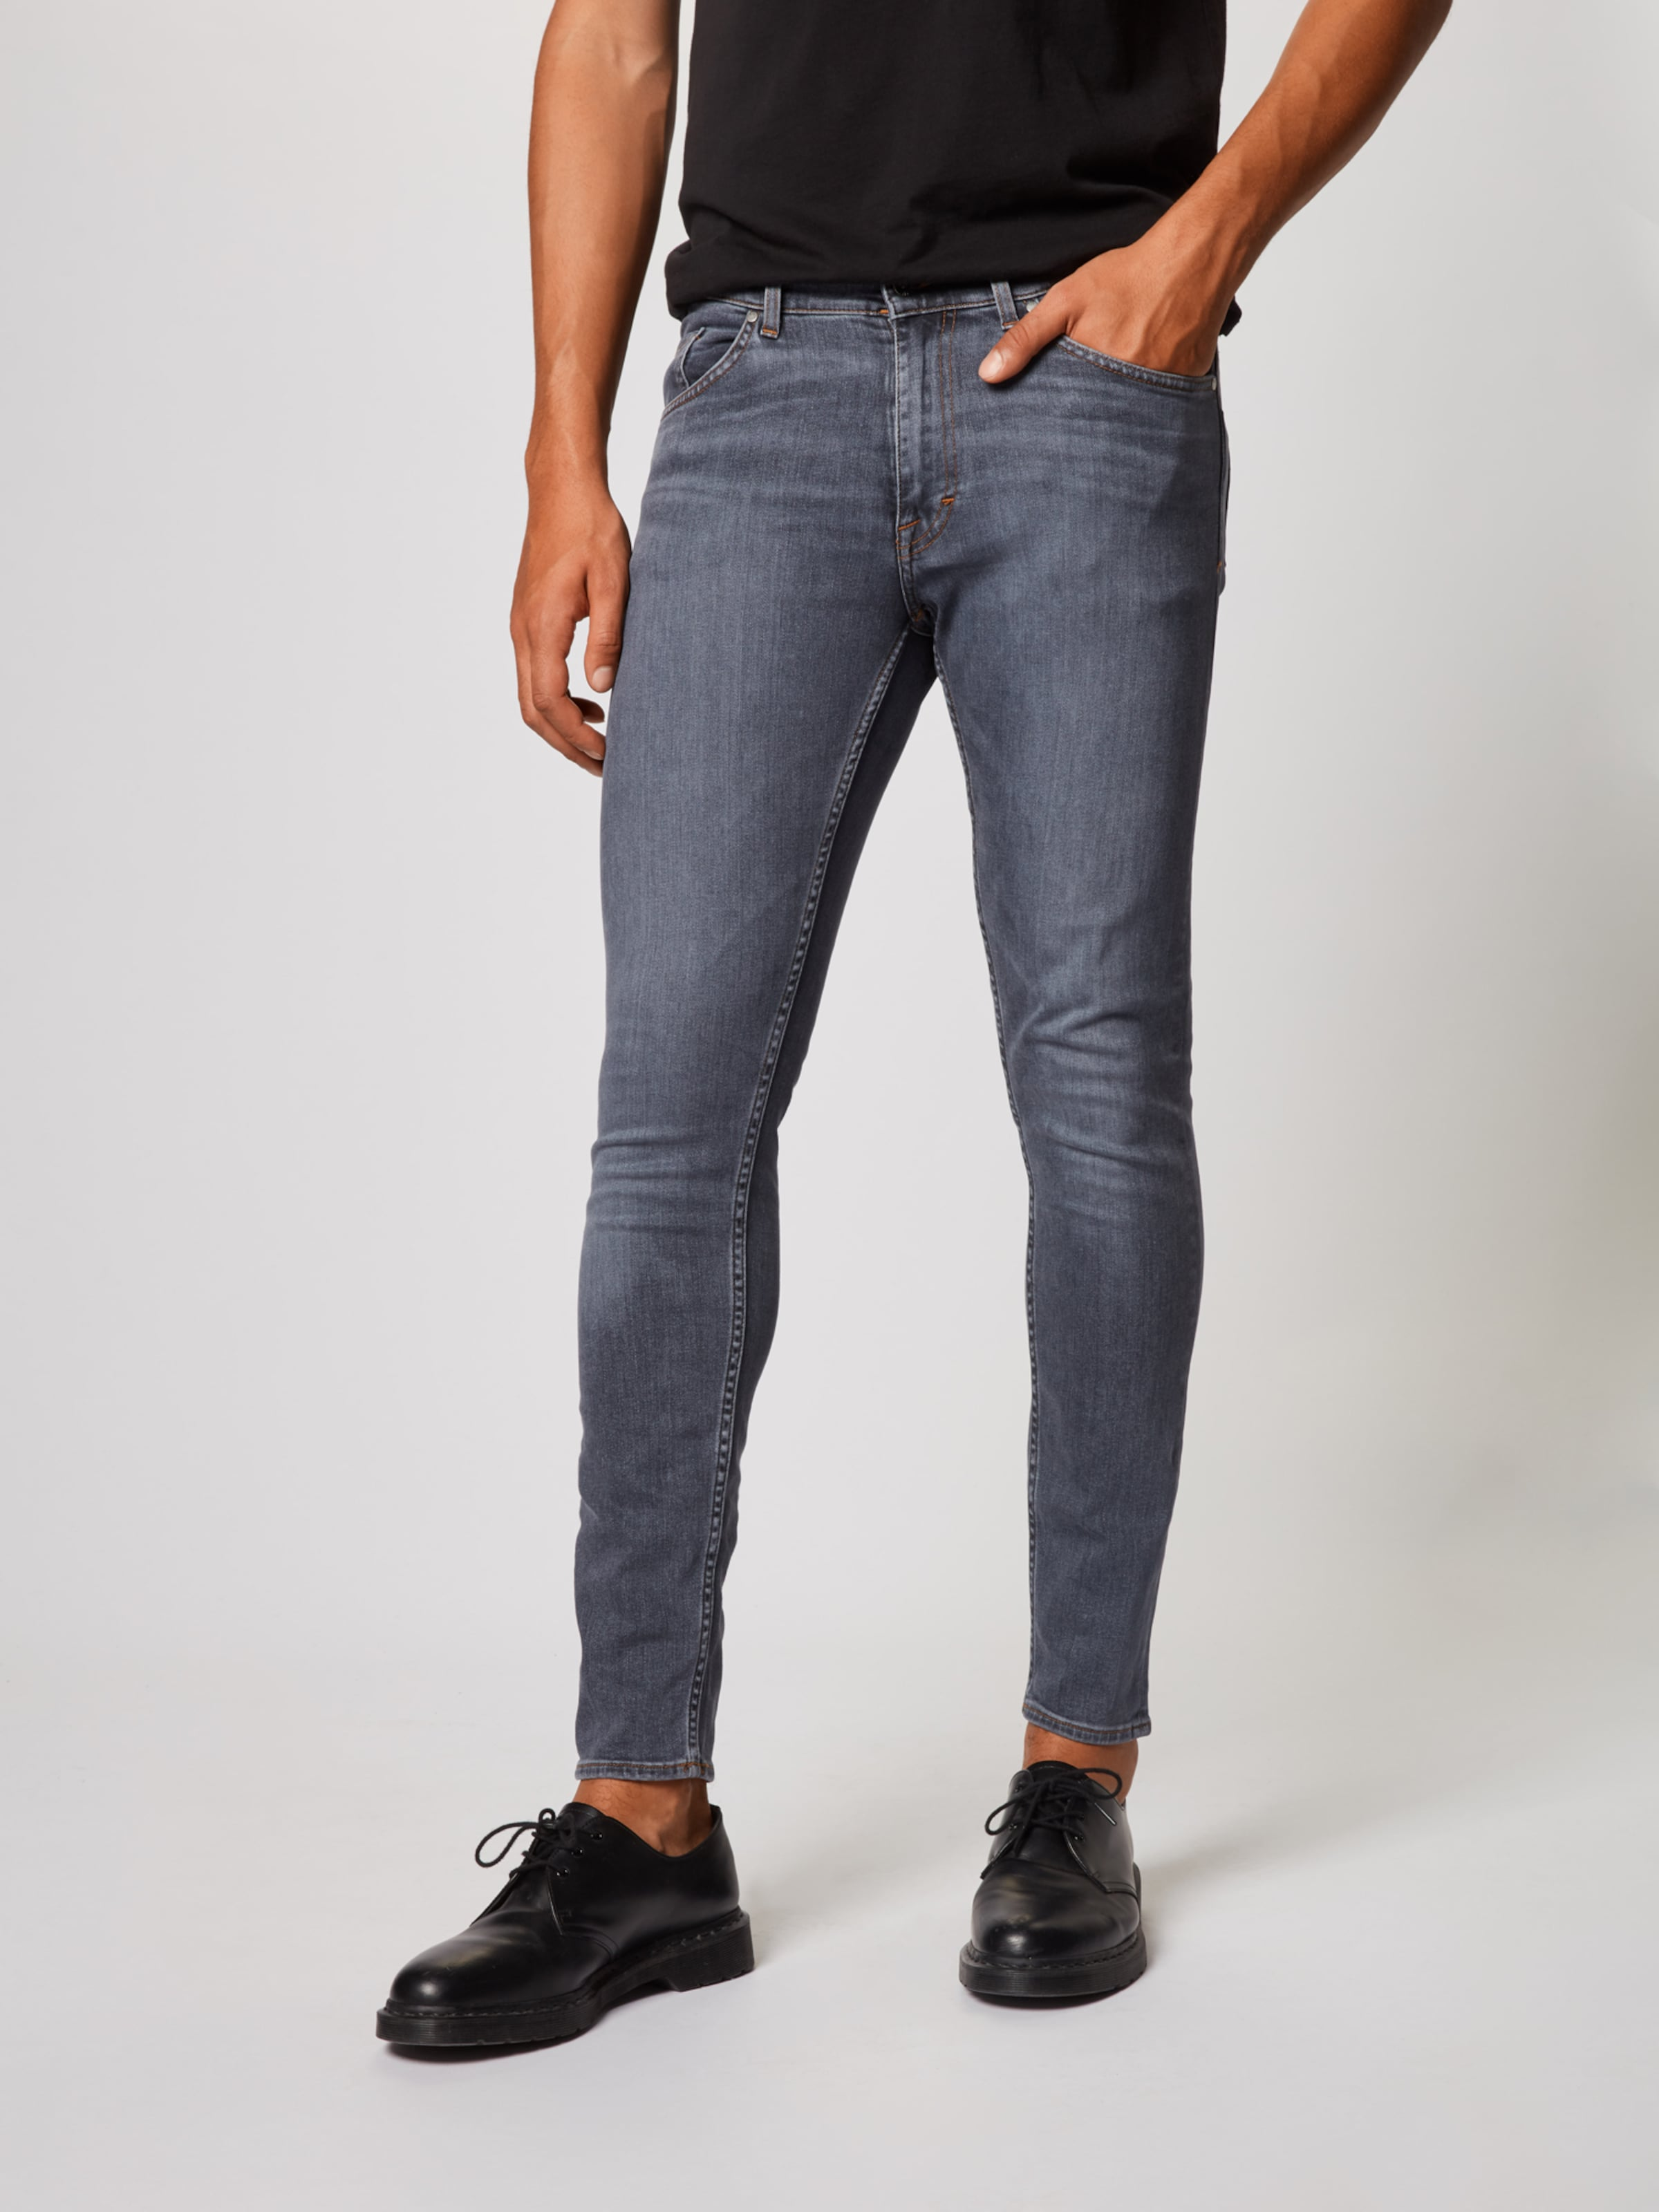 Gris Sweden En 'evolve' Of Jean Tiger Denim Qrdths